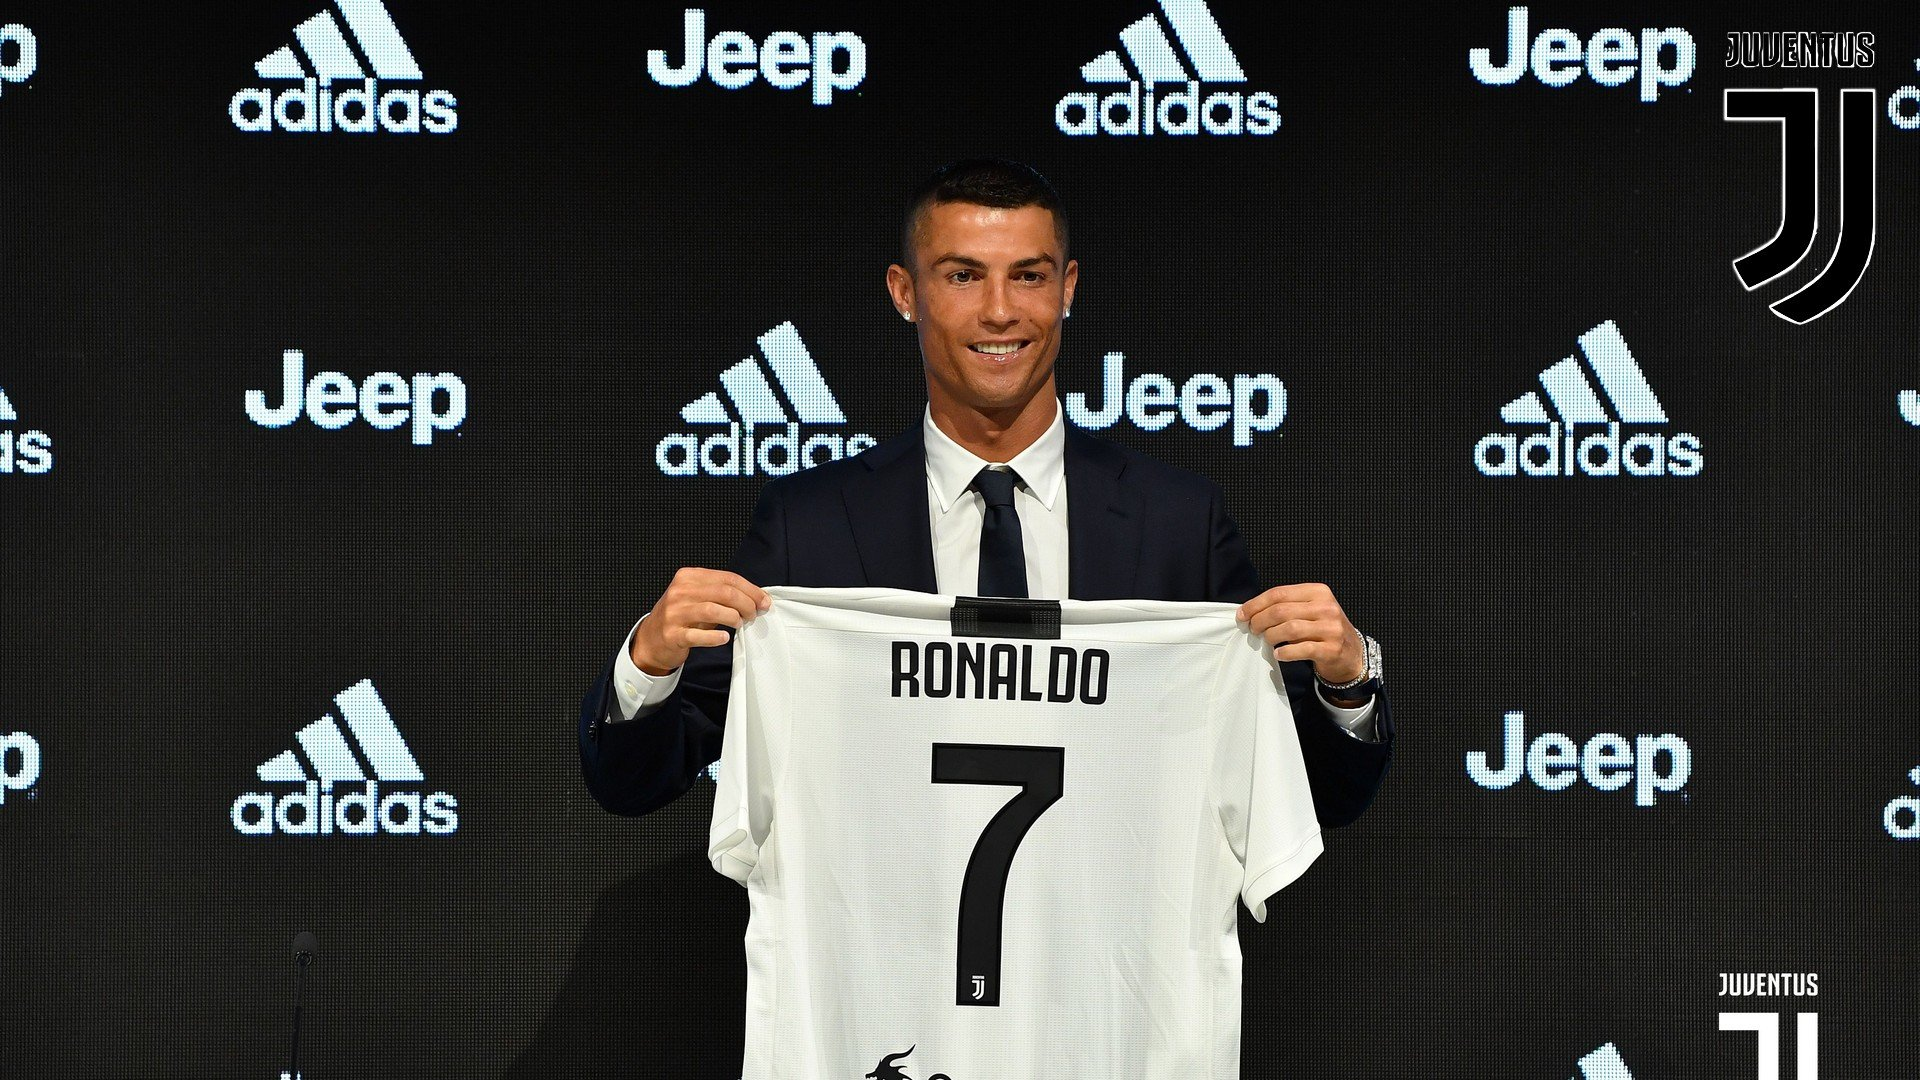 Cristiano Ronaldo Juventus HD Wallpapers 2021 Football Wallpaper 1920x1080